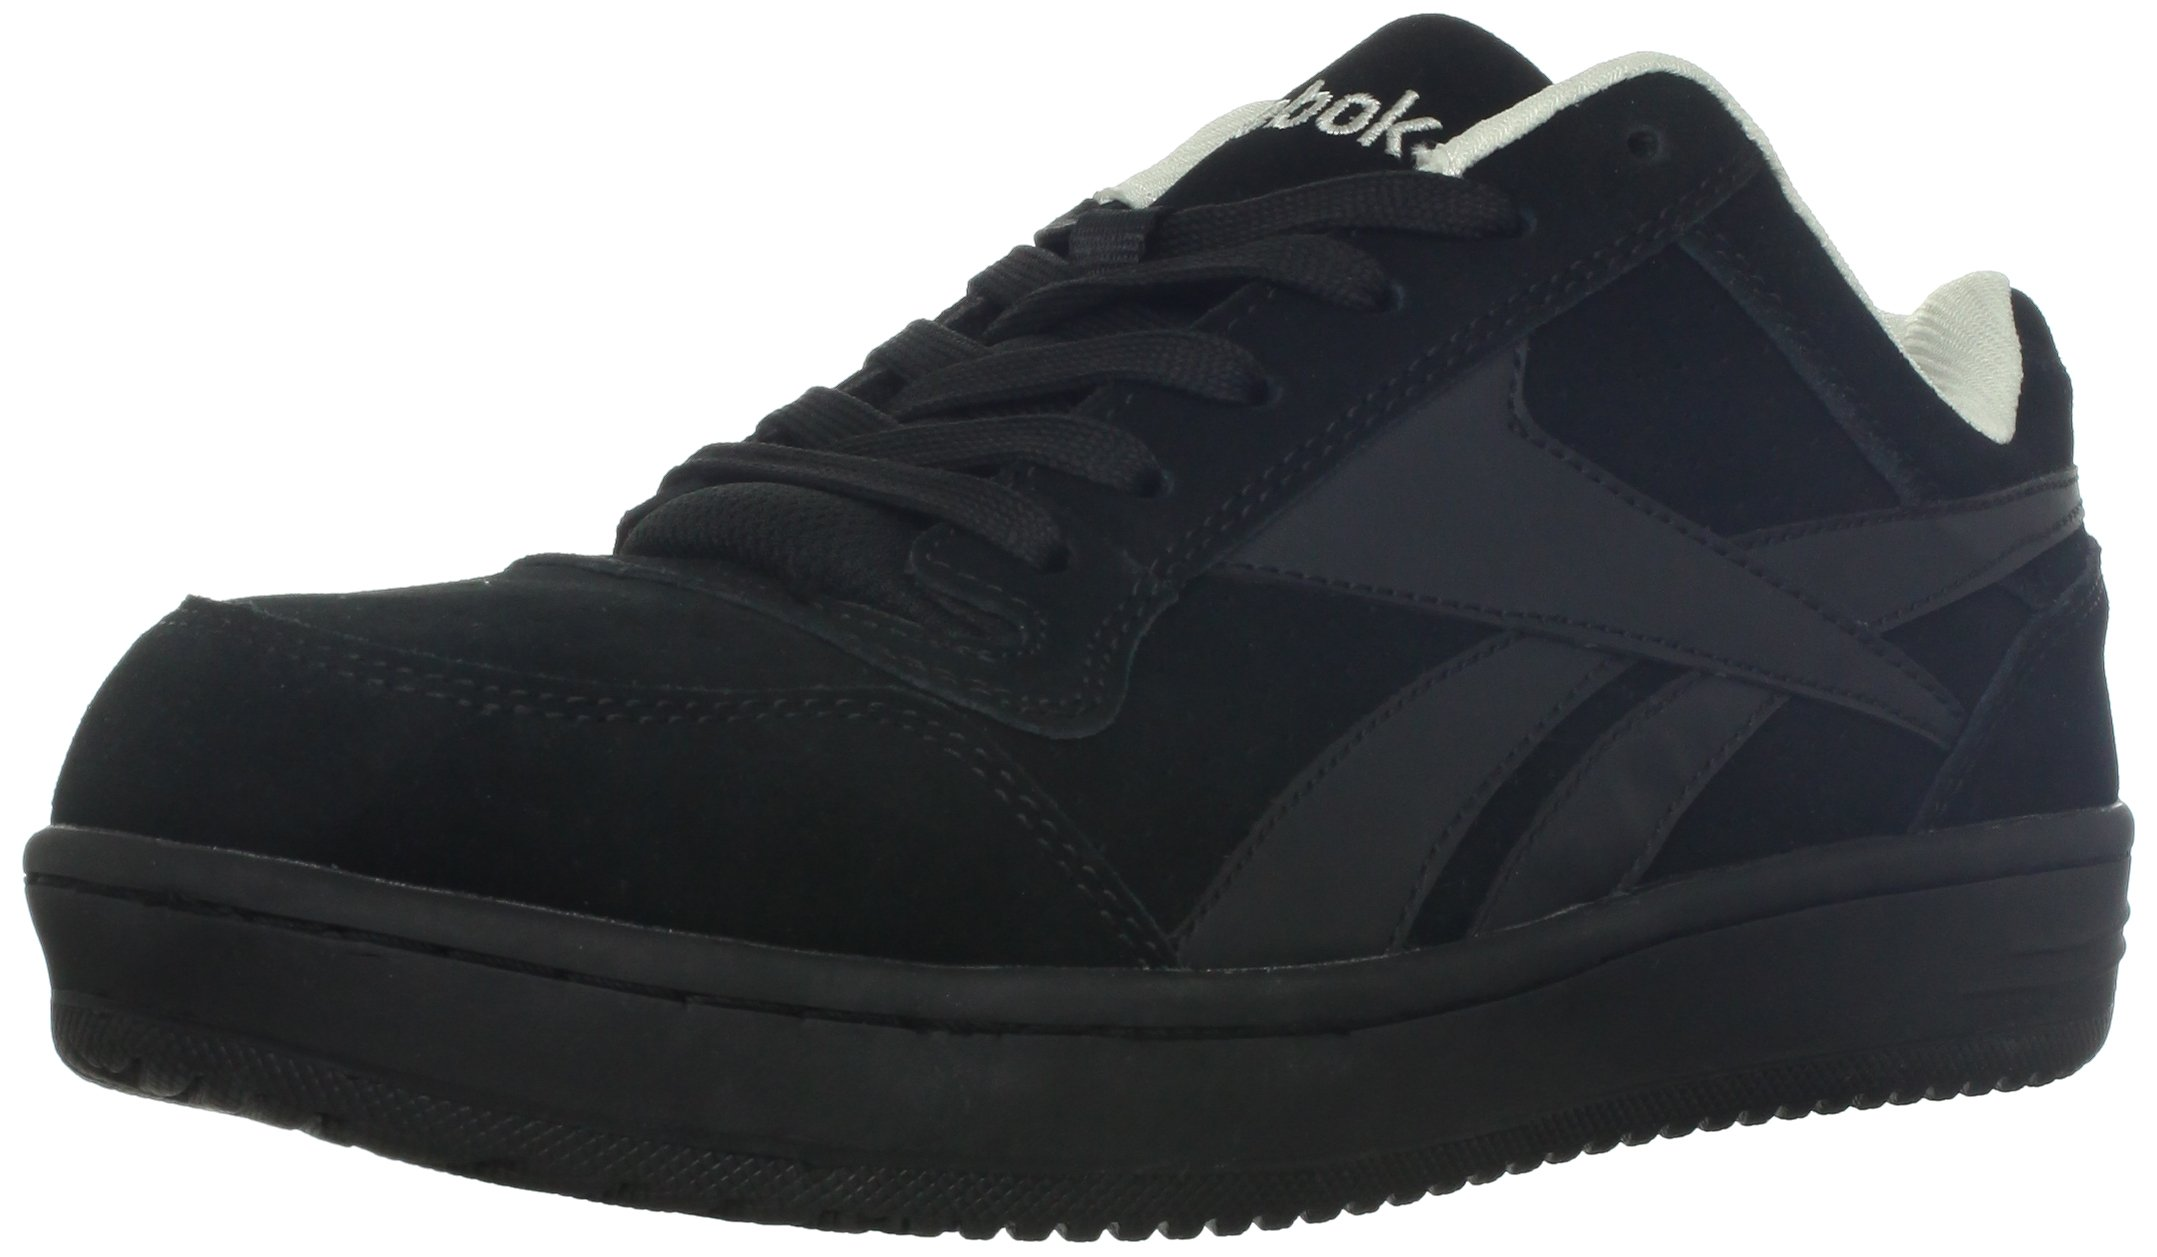 Reebok Work Men s Soyay RB1910 Skate Style EH Safety Shoe 7e92237d2